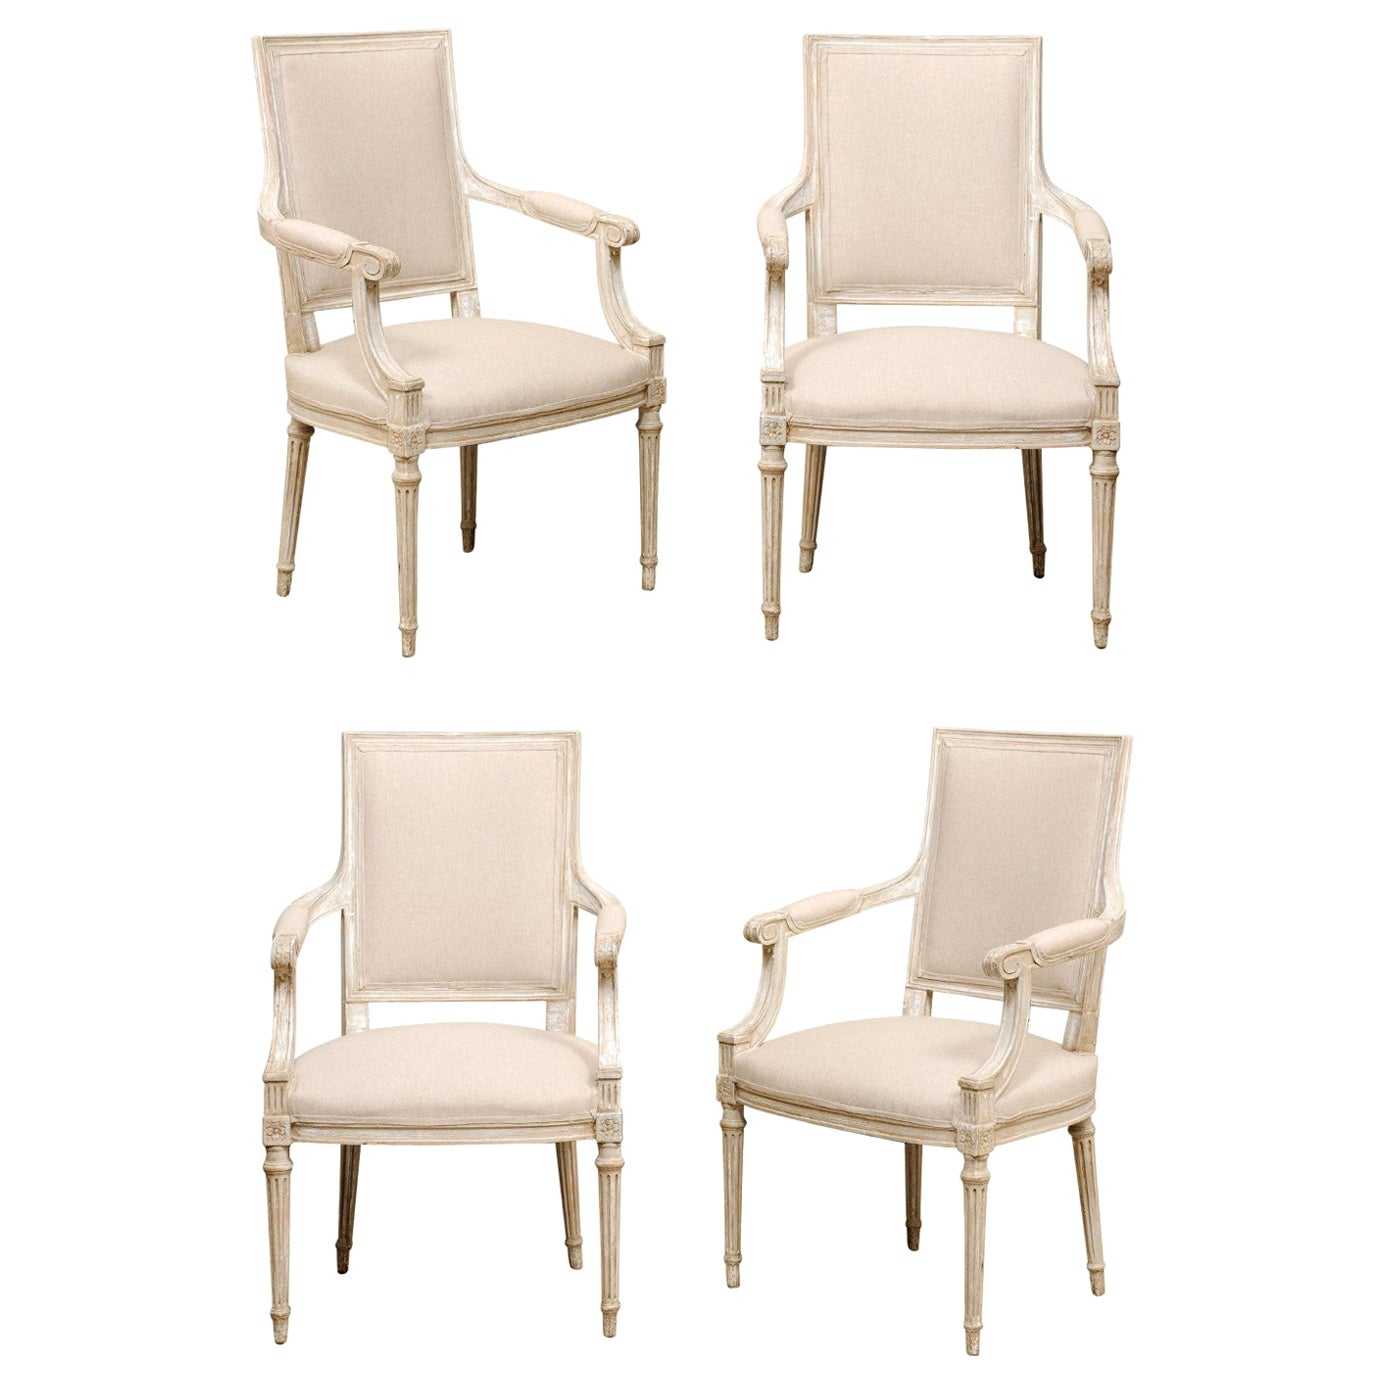 French Set of Four Carved Wood Armchairs with Newly Upholstered Seats and Backs